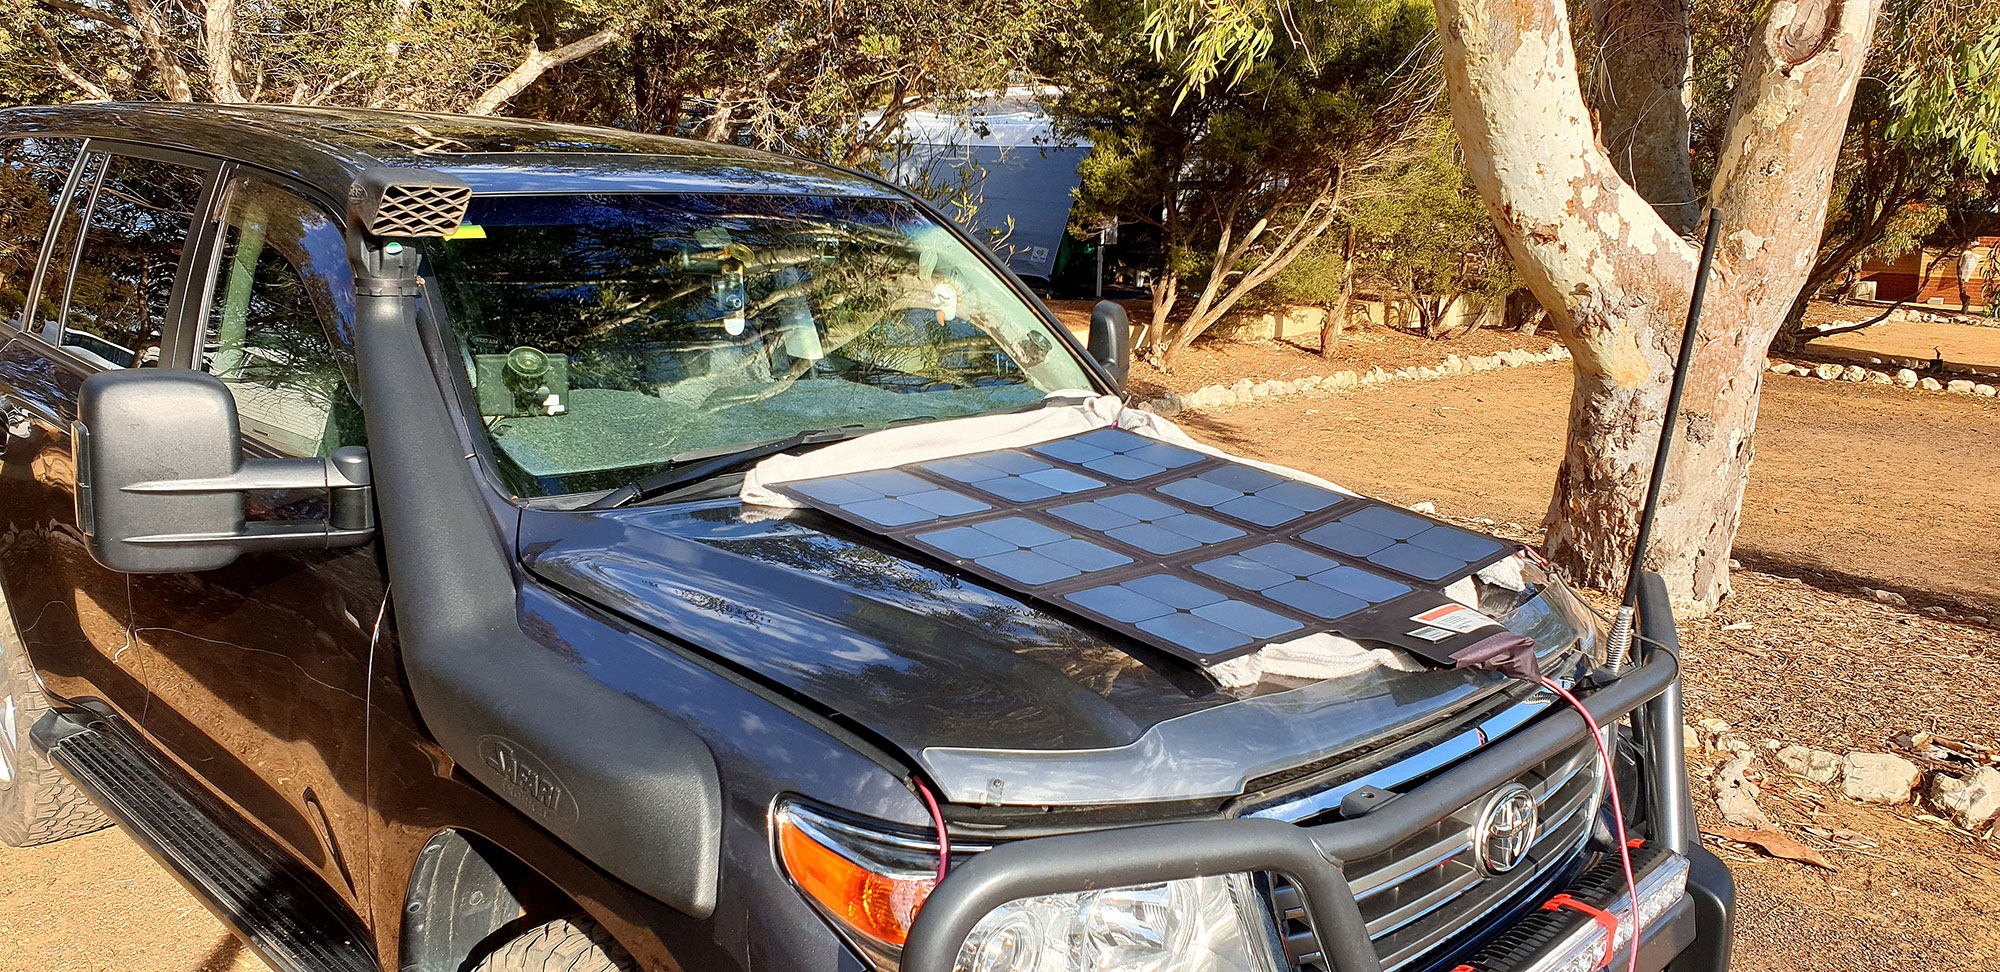 Solar panels on a 200 Series bonnet